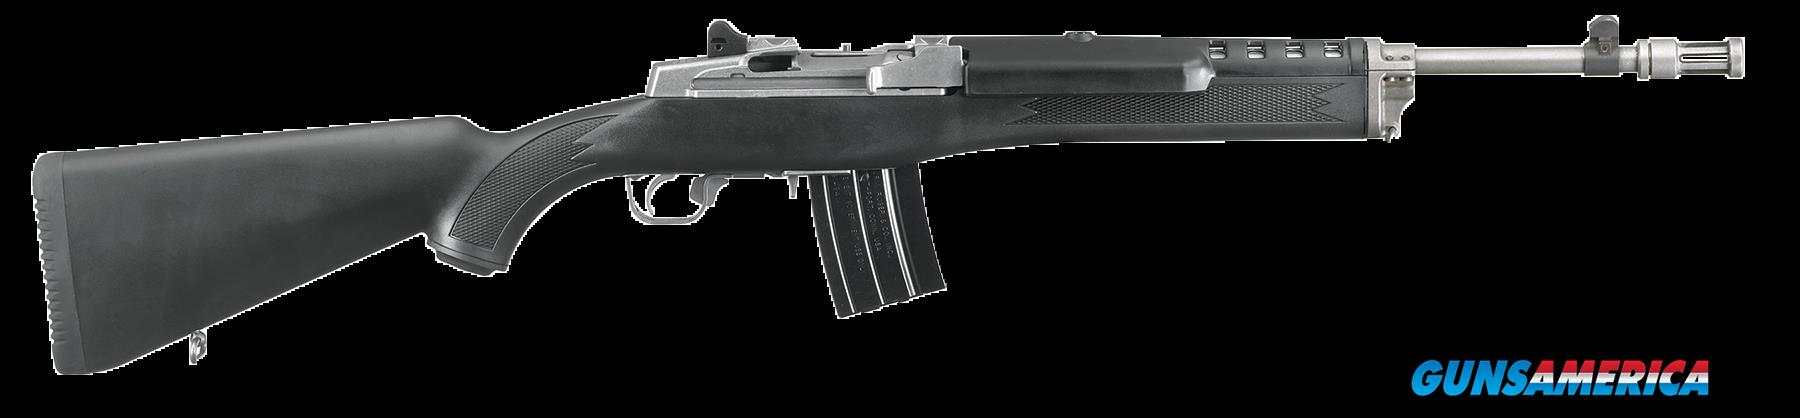 "Ruger 5819 Mini-14 Tactical Semi-Automatic 223 Remington/5.56 NATO 16.1"" 20+1 Synthetic Black Stk  Guns > Rifles > R Misc Rifles"